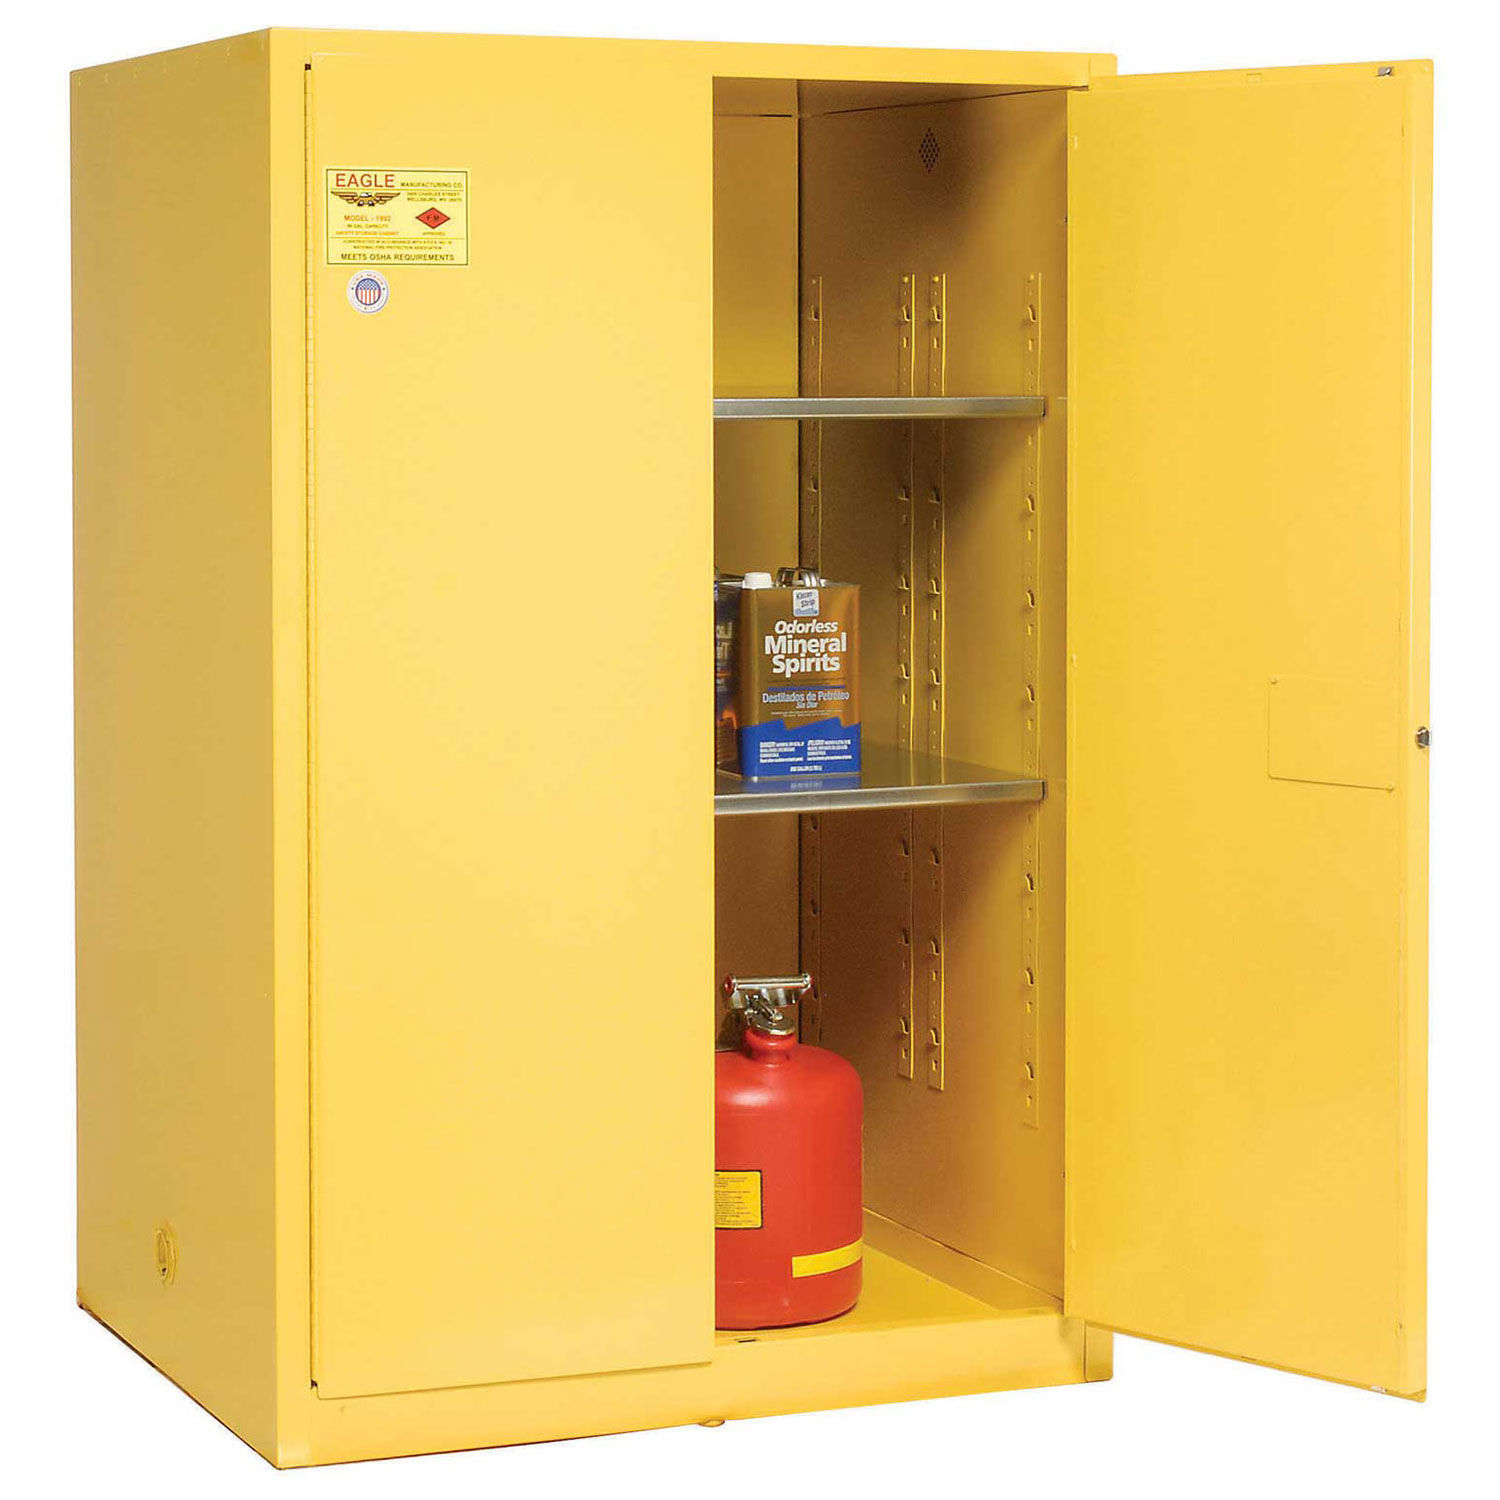 Details About Eagle Double Wall Flammable Liquids Safety Cabinet 43x34x65 Manual Close